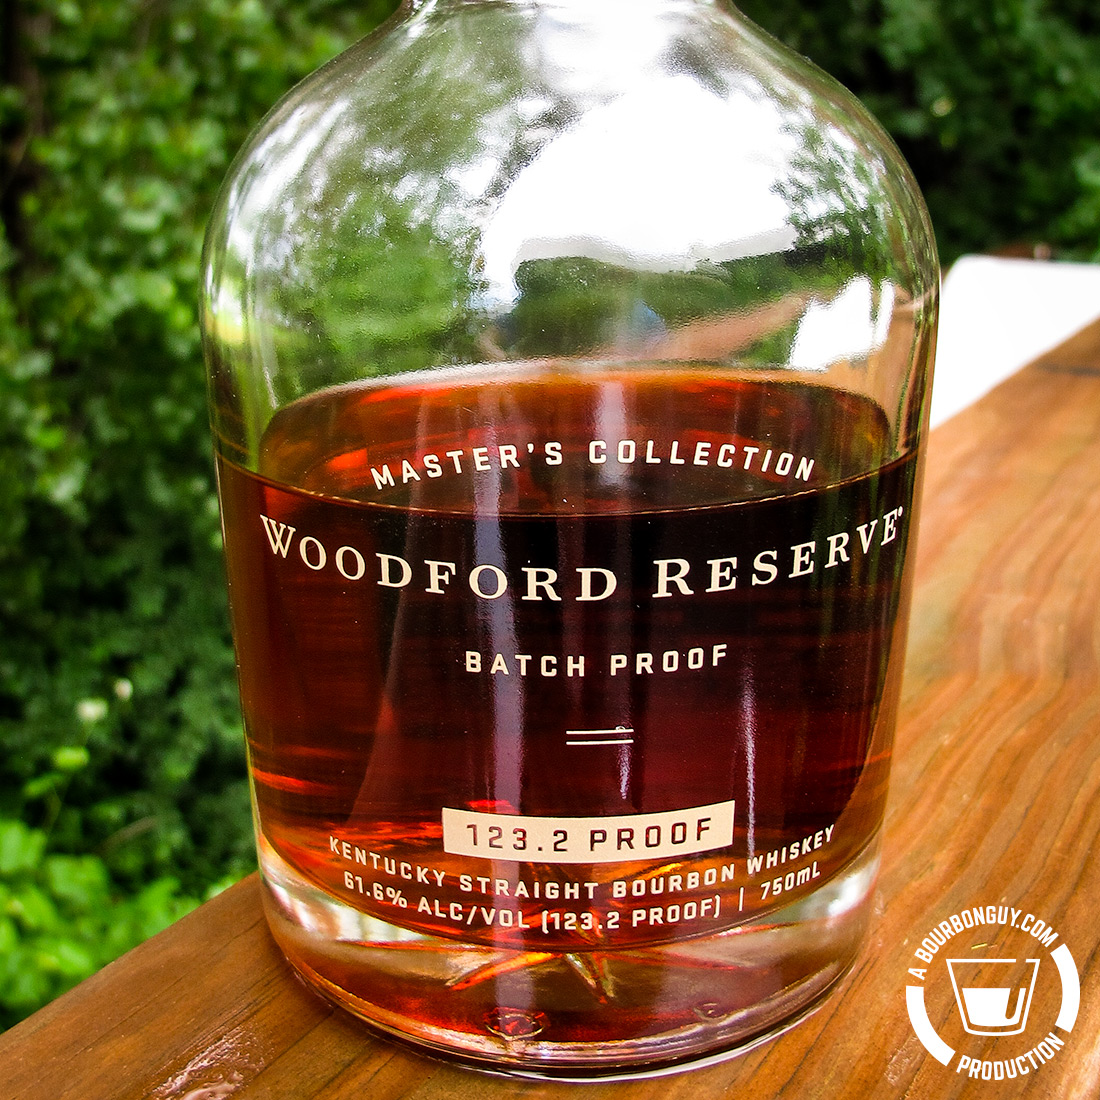 IMAGE: the 2019 edition of Woodford Reserve Batch Proof. 123.2 Proof